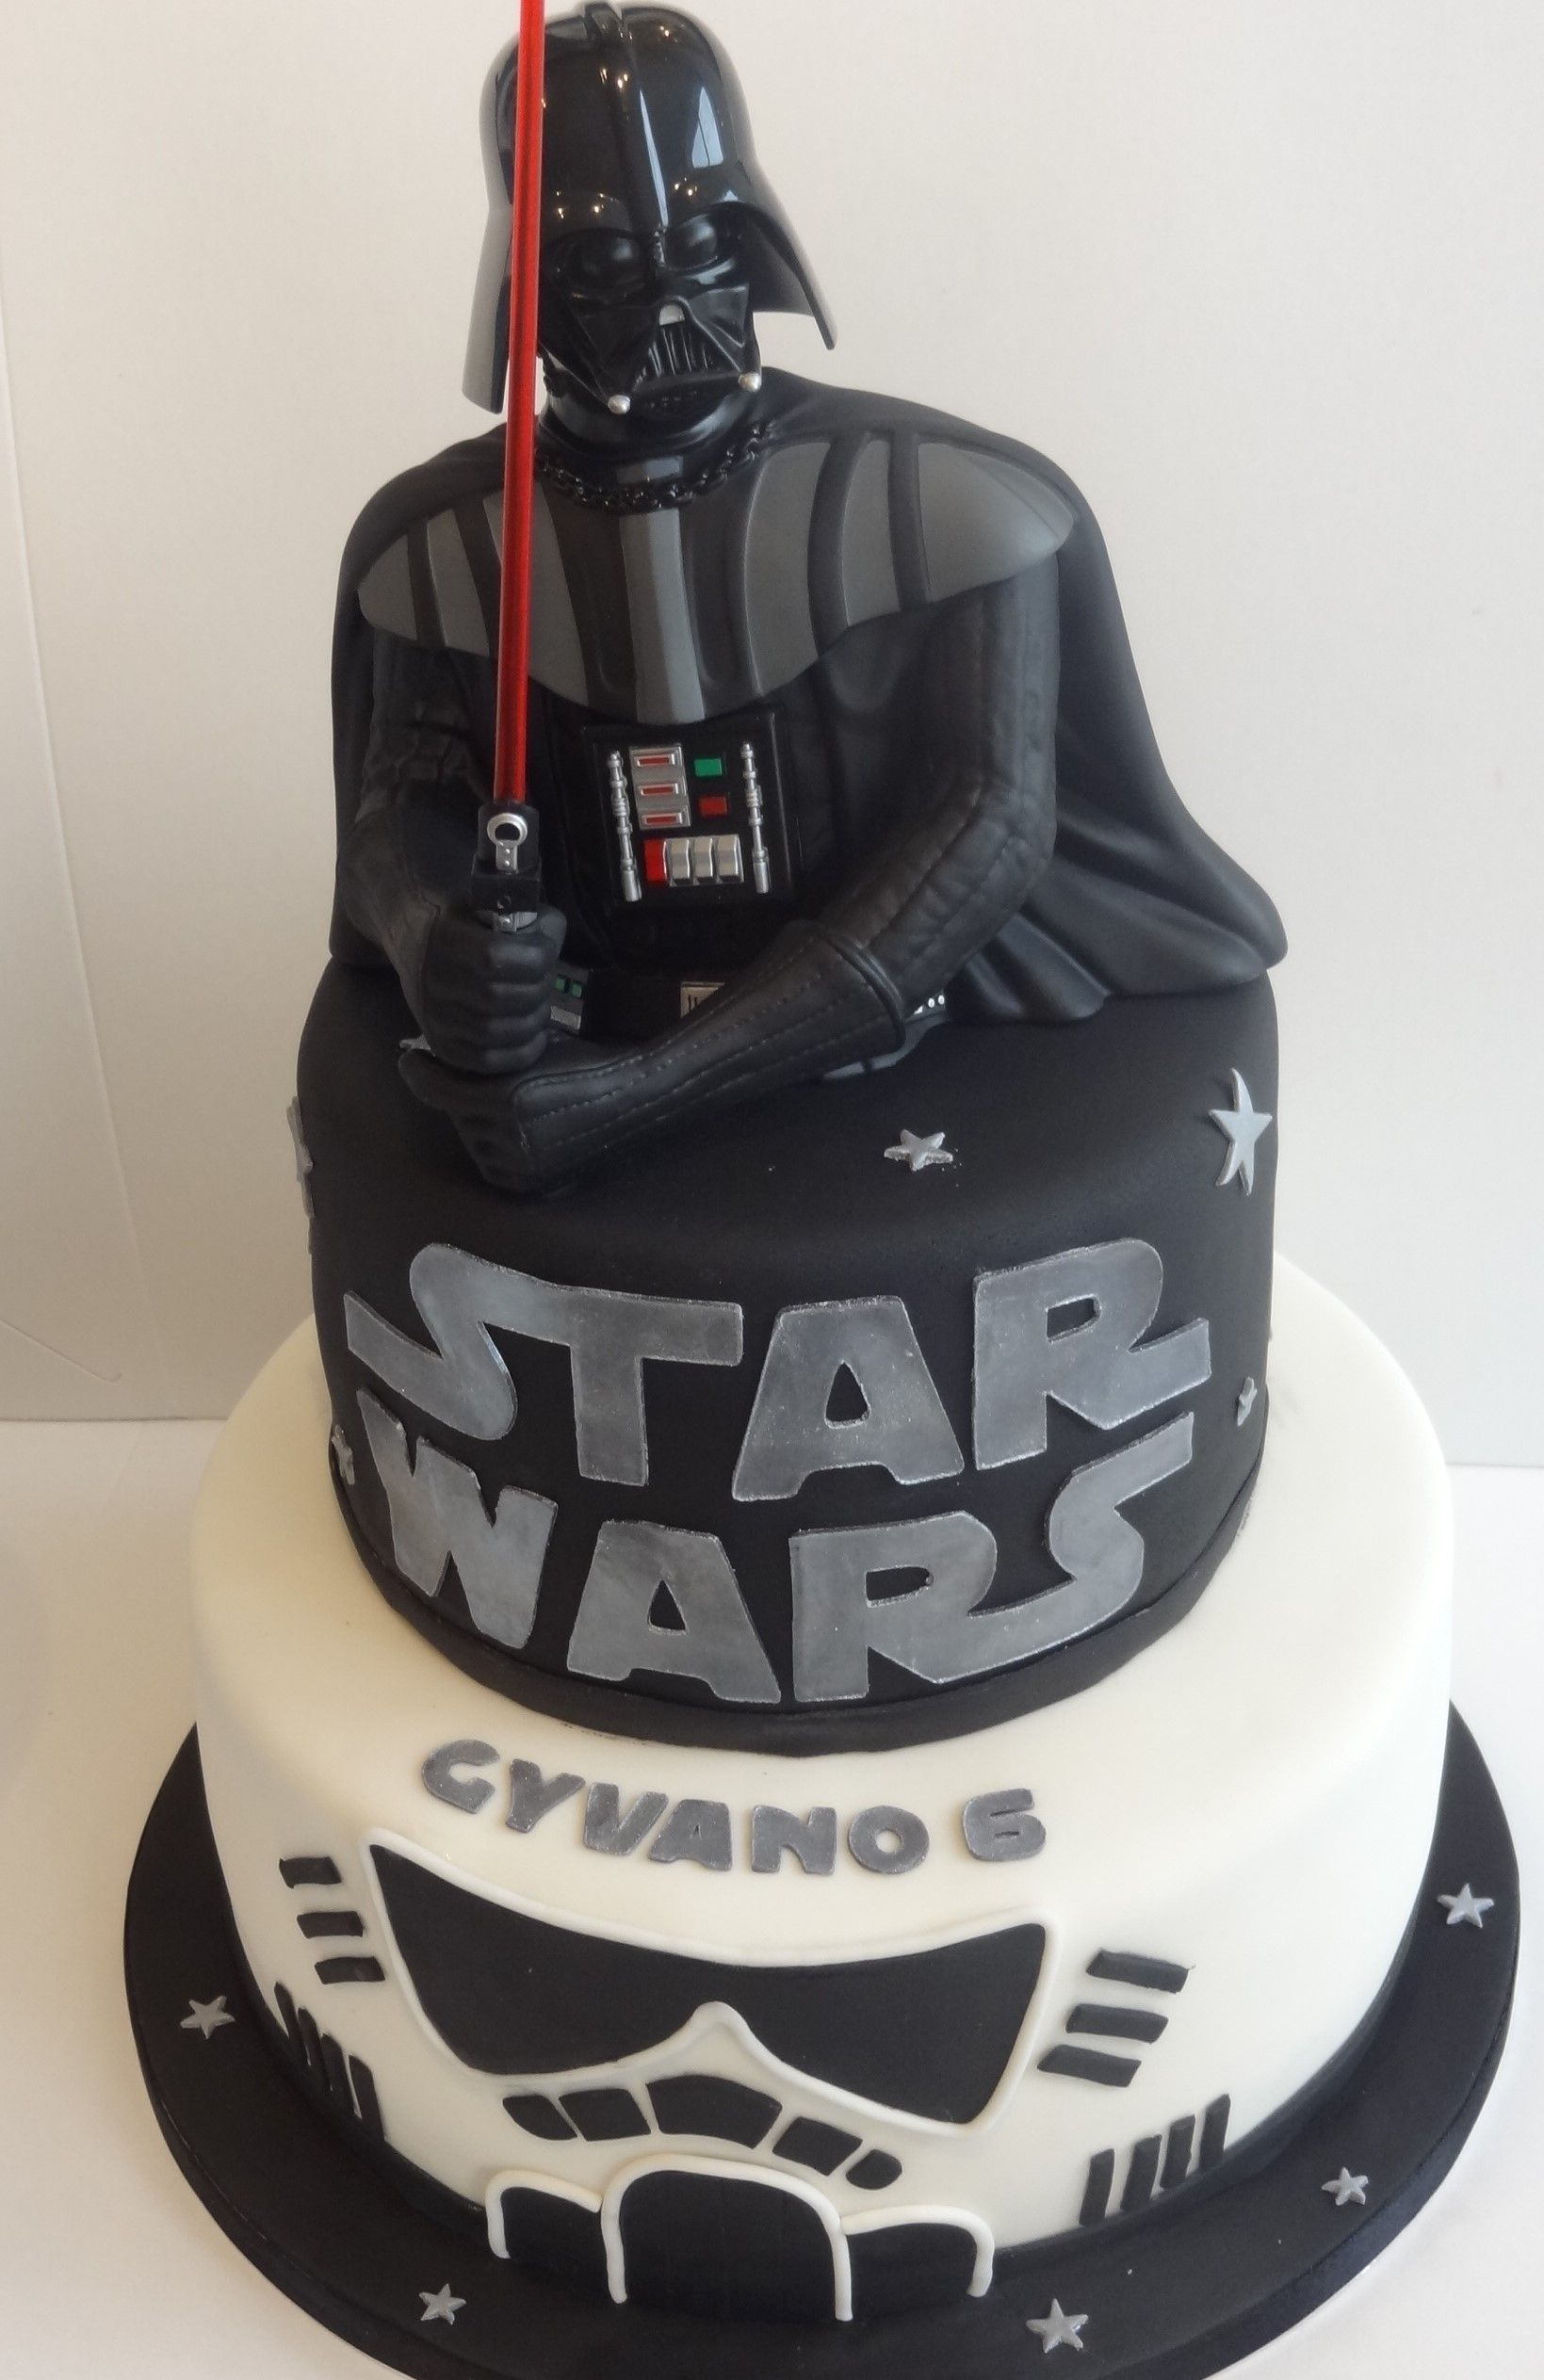 Marvelous Star Wars Cake For Gyvano Darth Vader With Images Star Wars Funny Birthday Cards Online Overcheapnameinfo